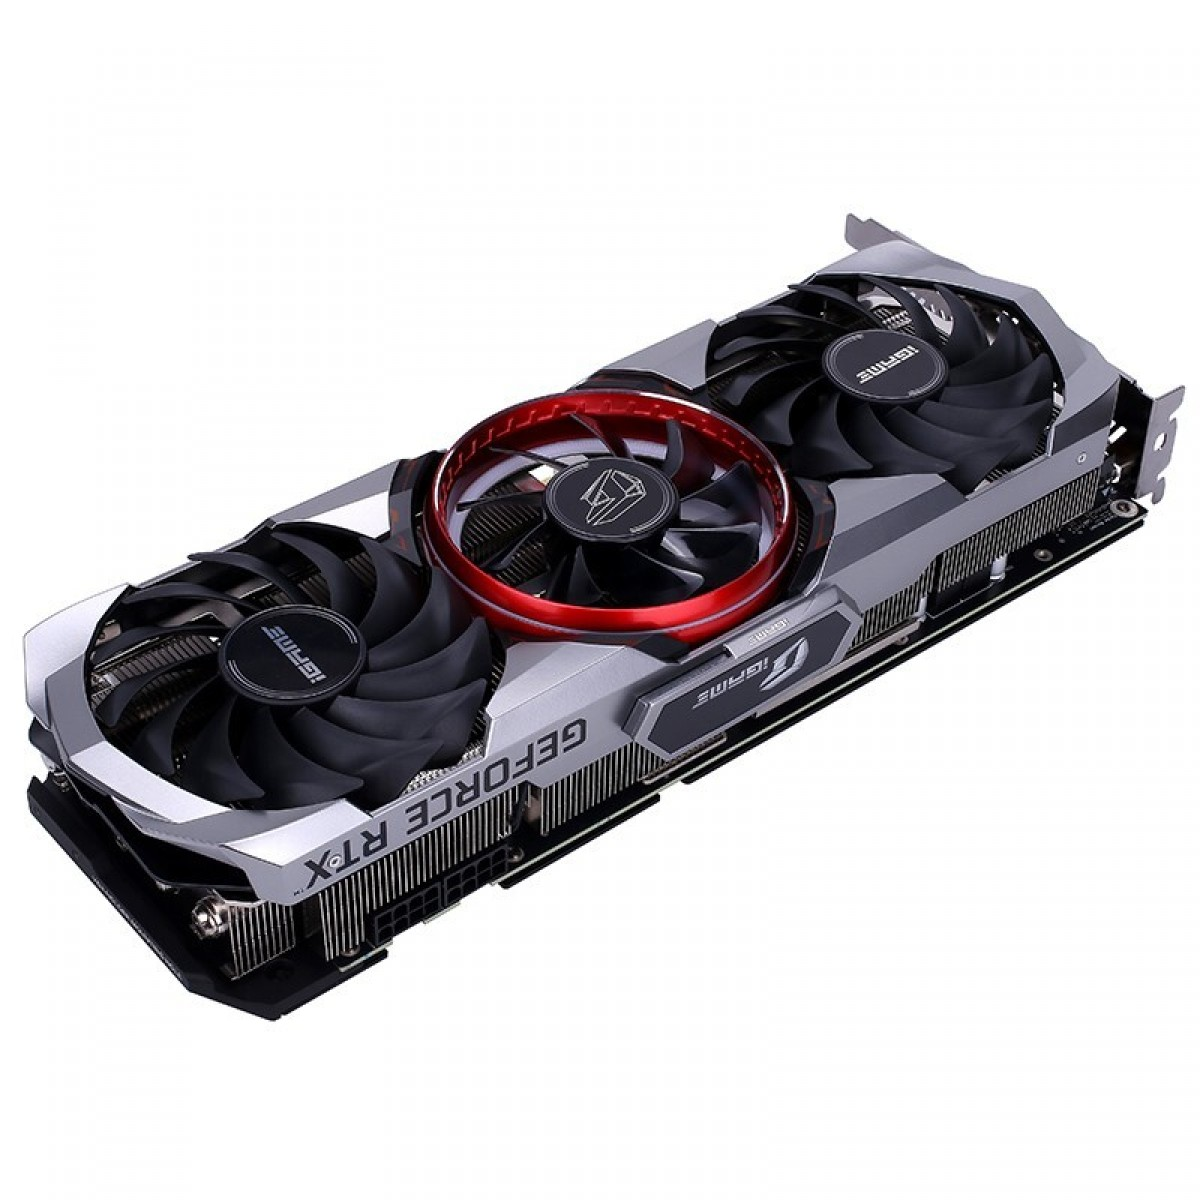 Placa de Vídeo Colorful, GeForce, iGame RTX 3070 Advanced OC-V, 8GB, GDDR6, 256Bit, 212326116801